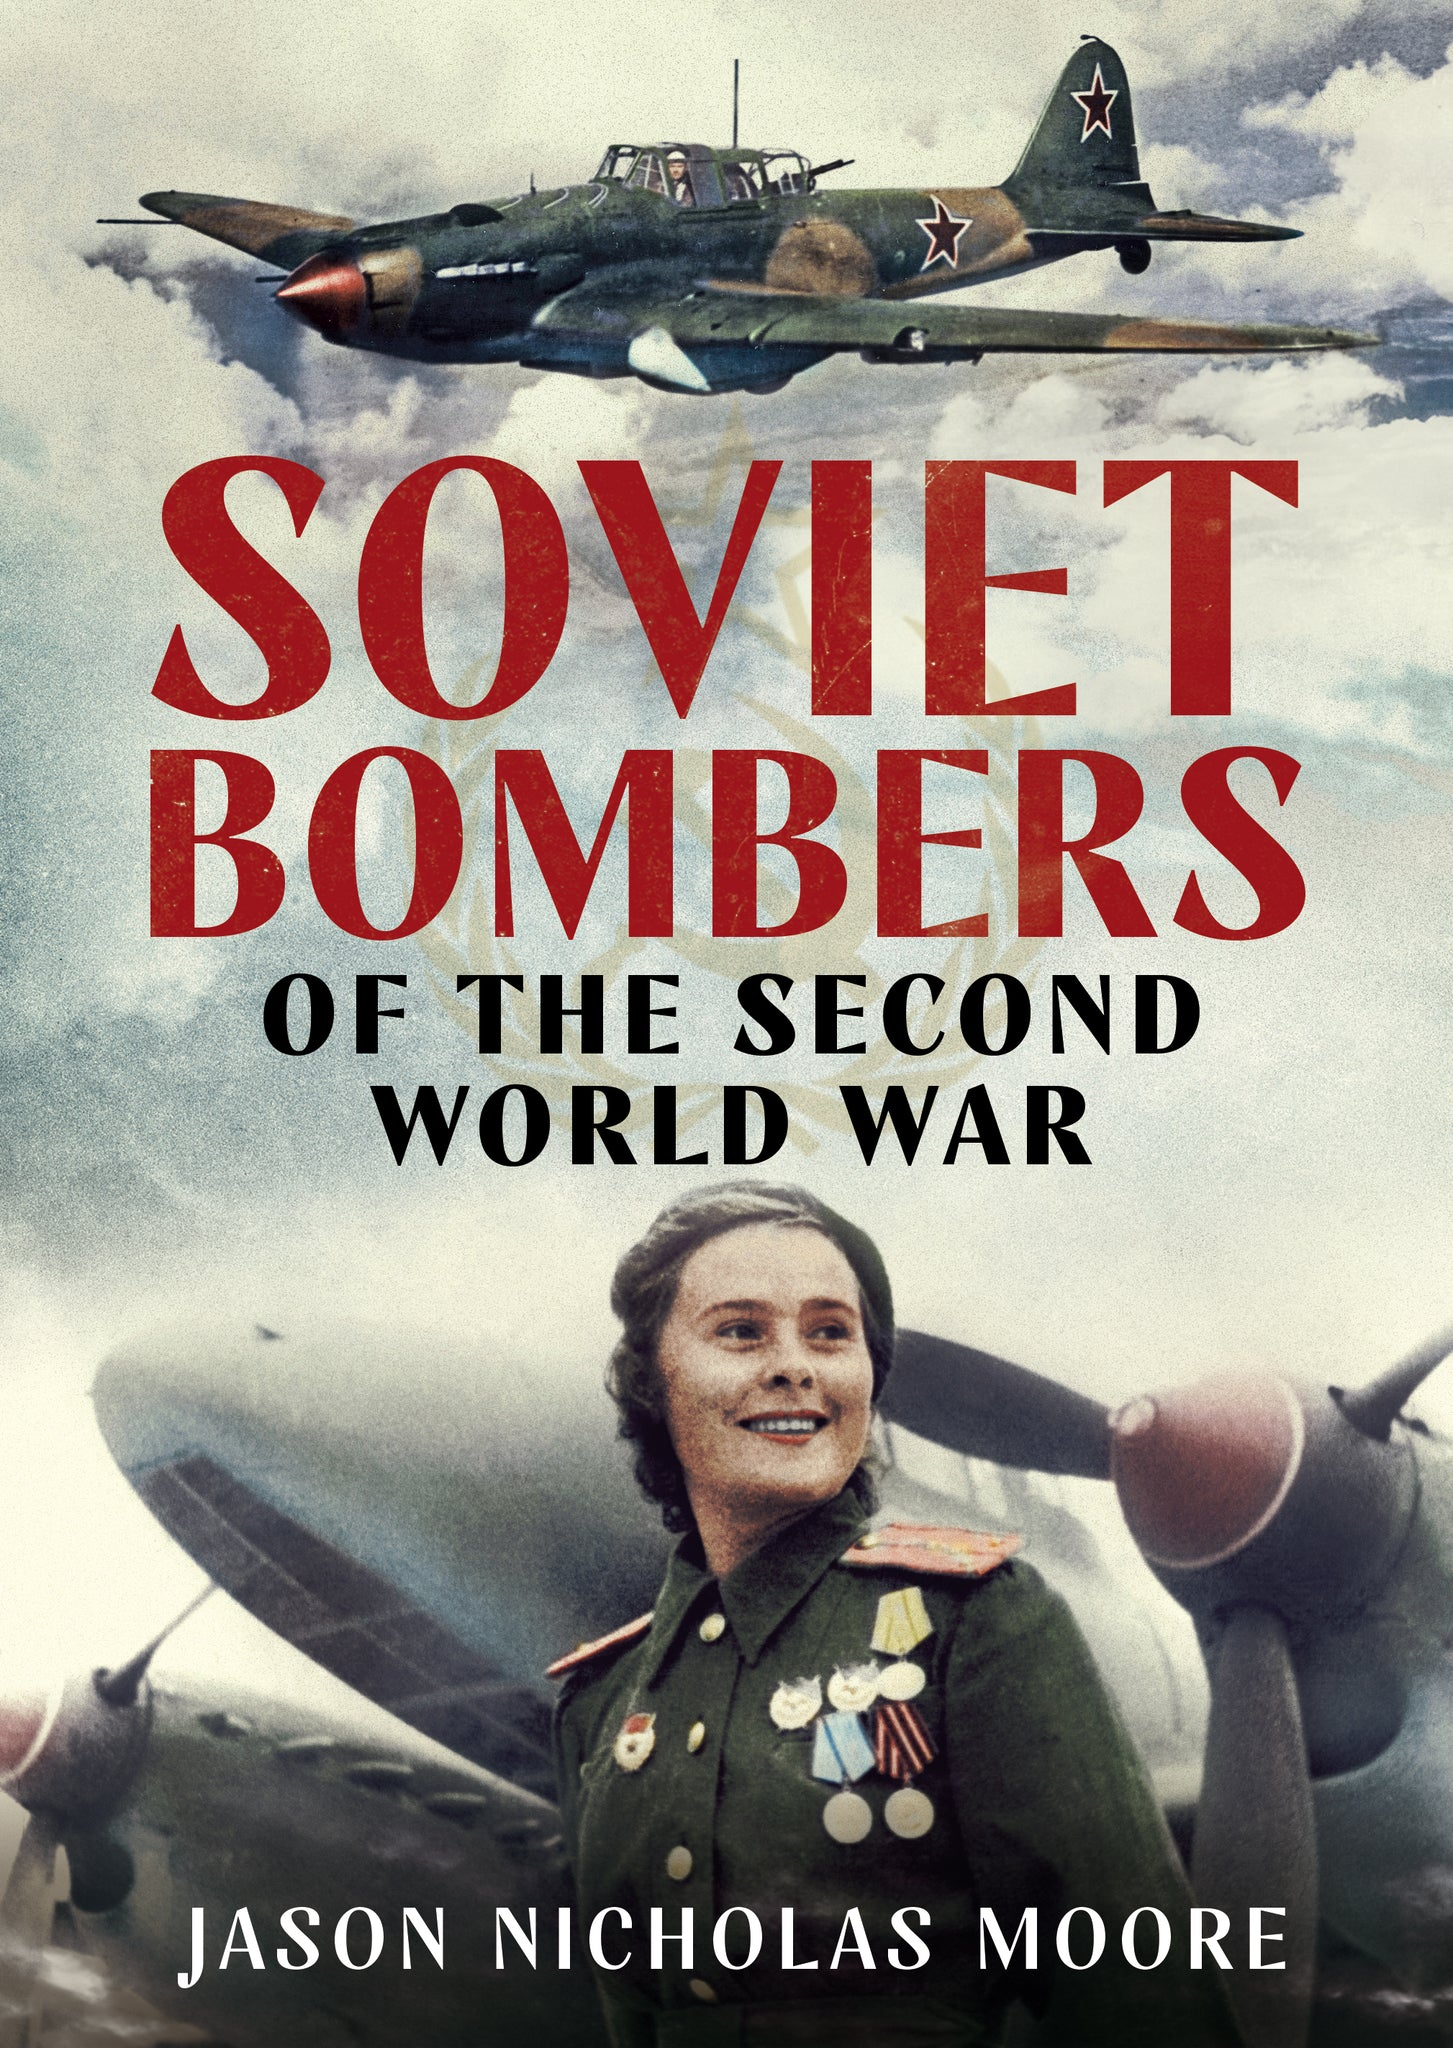 Soviet Bombers of the Second World War - available now from Fonthill Media